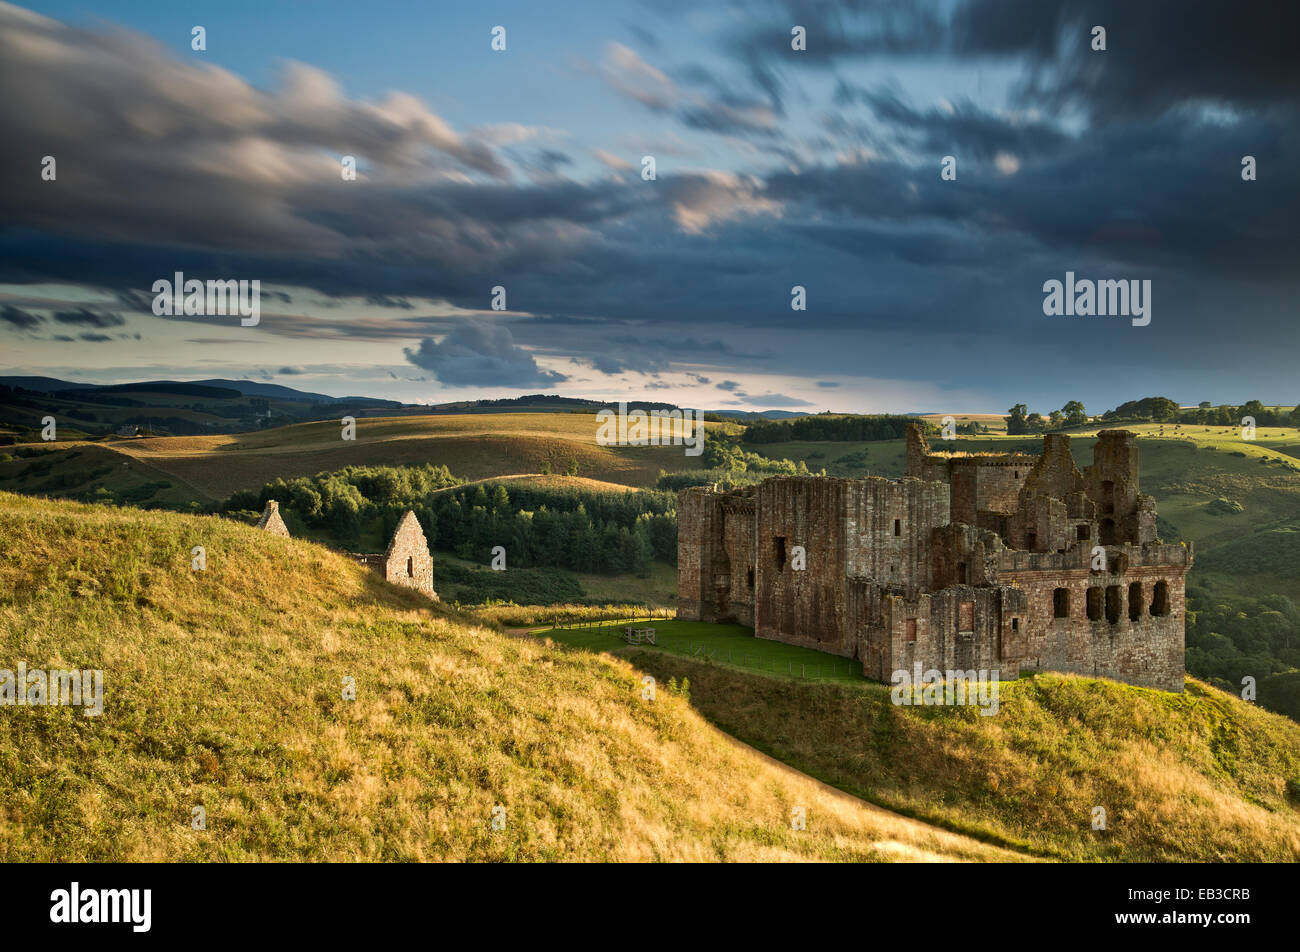 UK, Scotland, Midlothian, Pathhead, Ruins of Crichton Castle and surrounding landscape seen from hill covered in - Stock Image